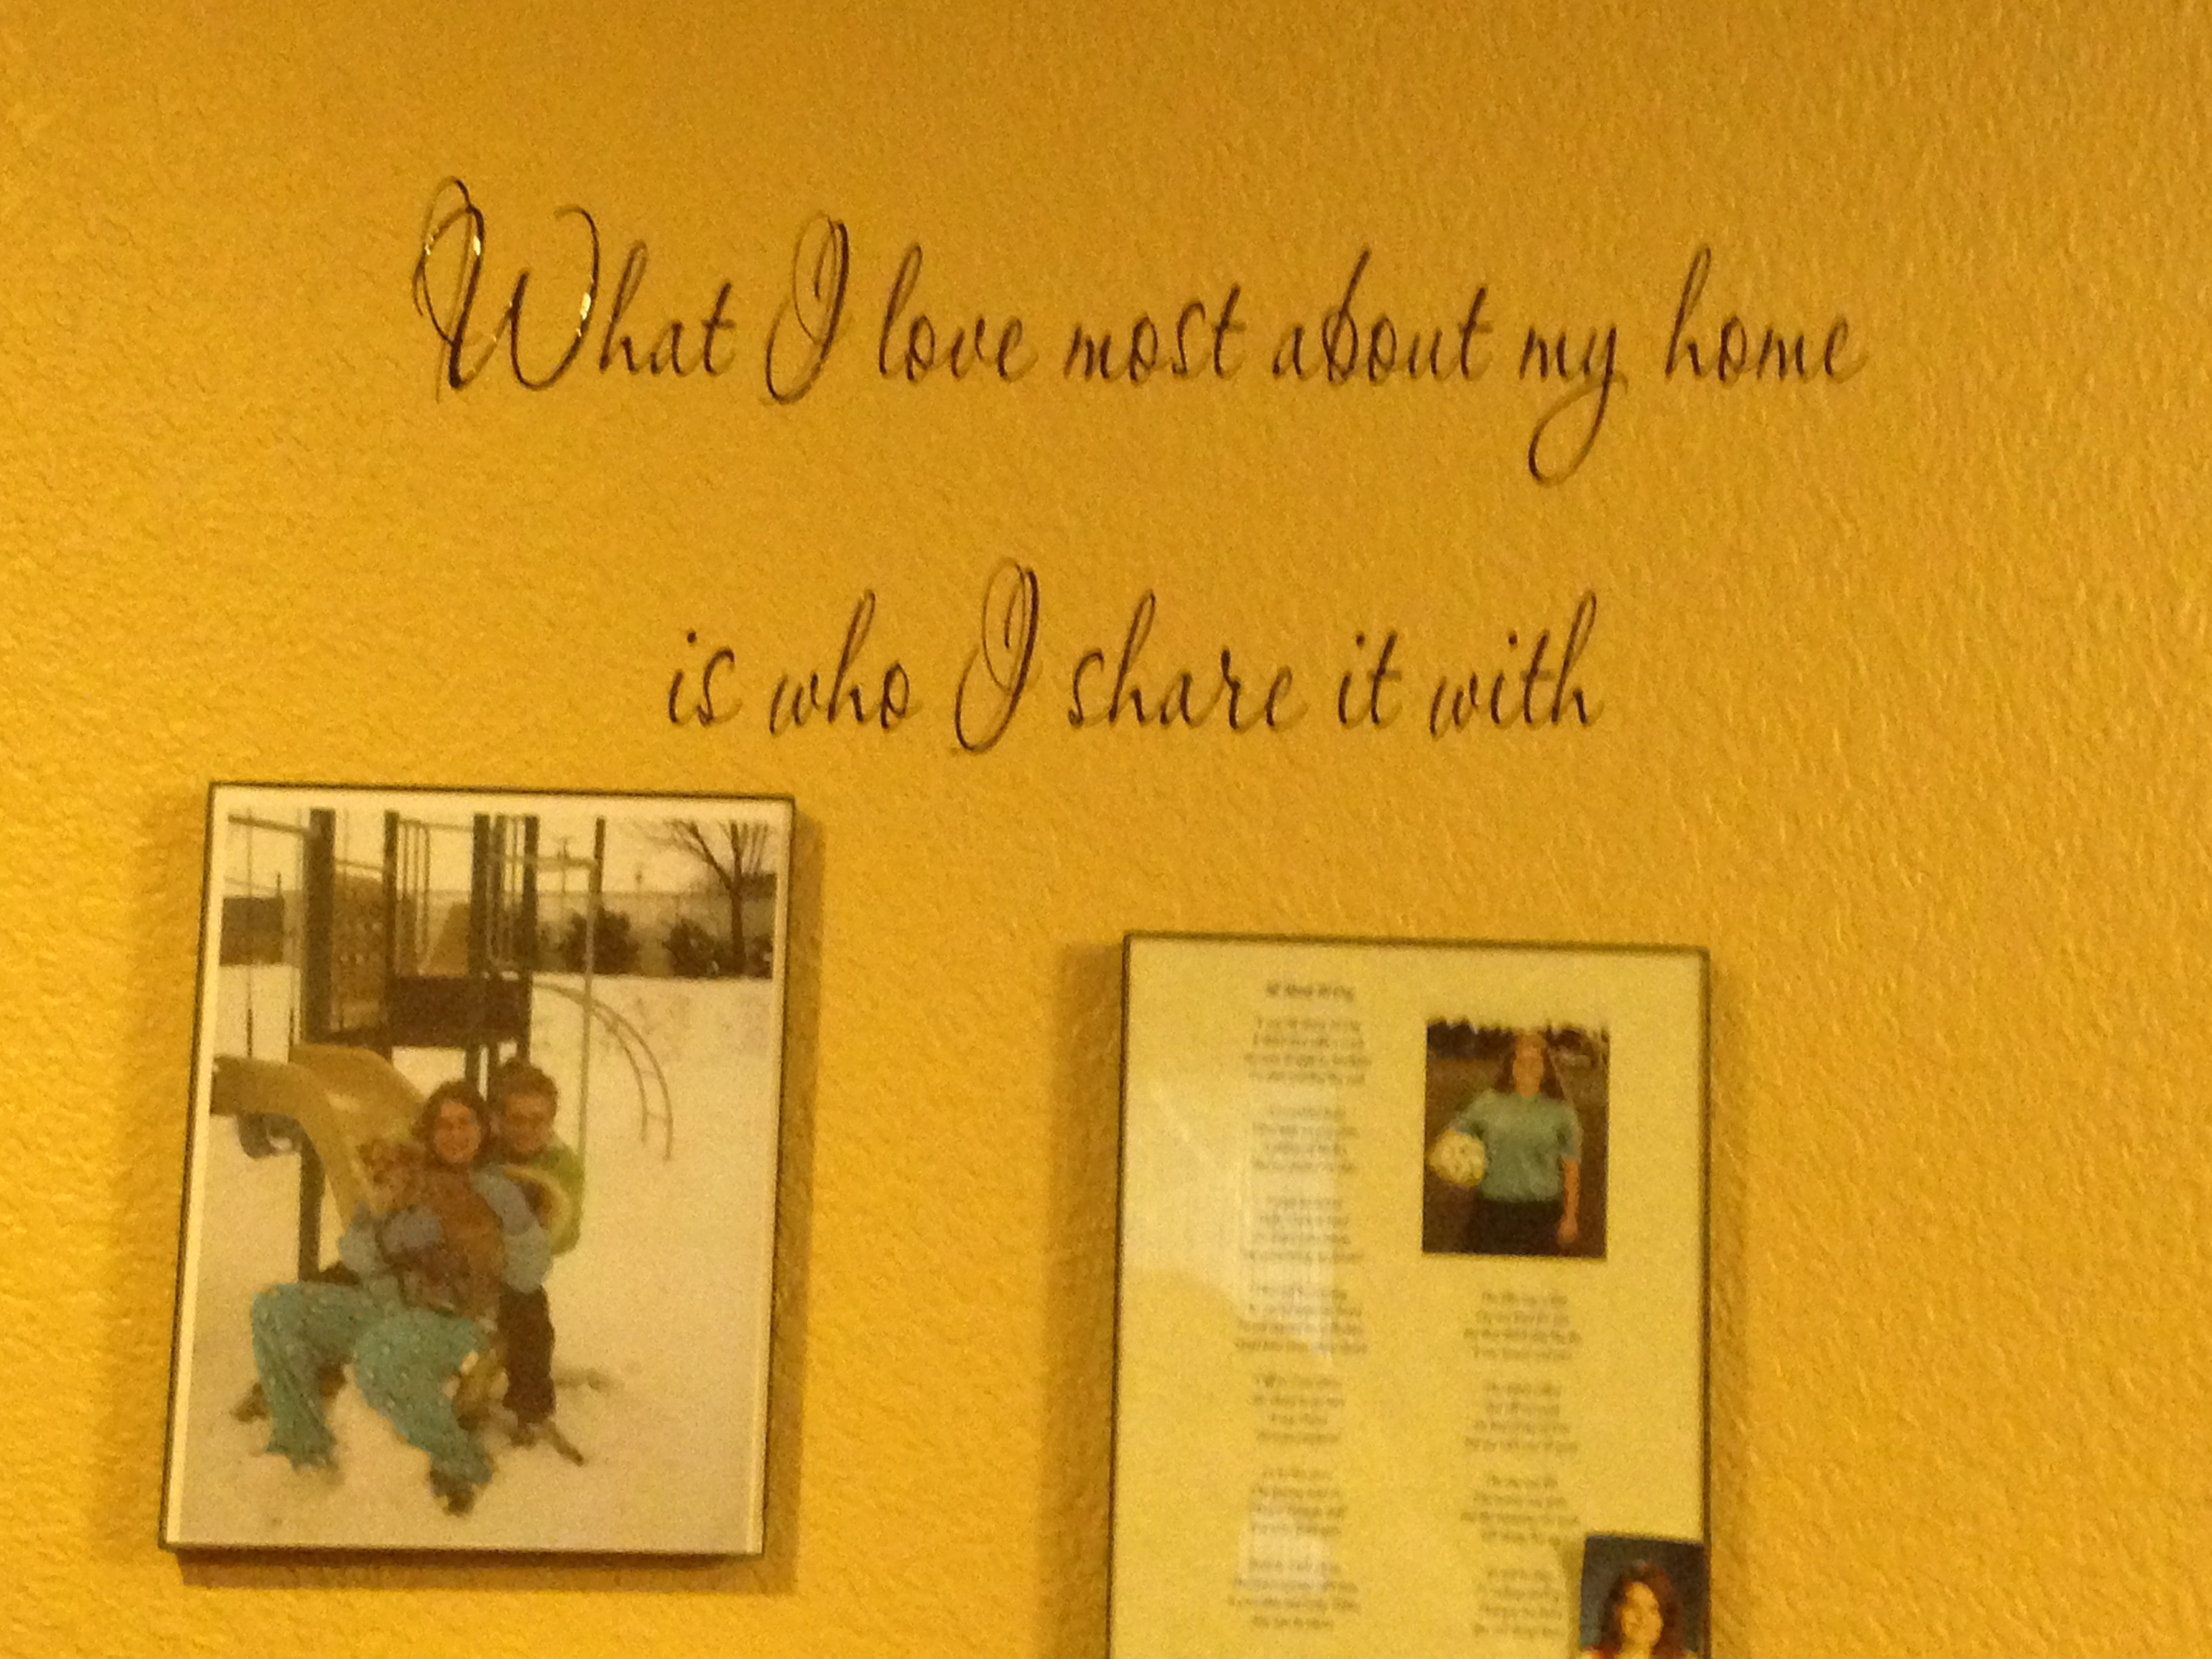 Vinyl Wall Decals Photo Gallery - Great Pics of Great Wall Arts